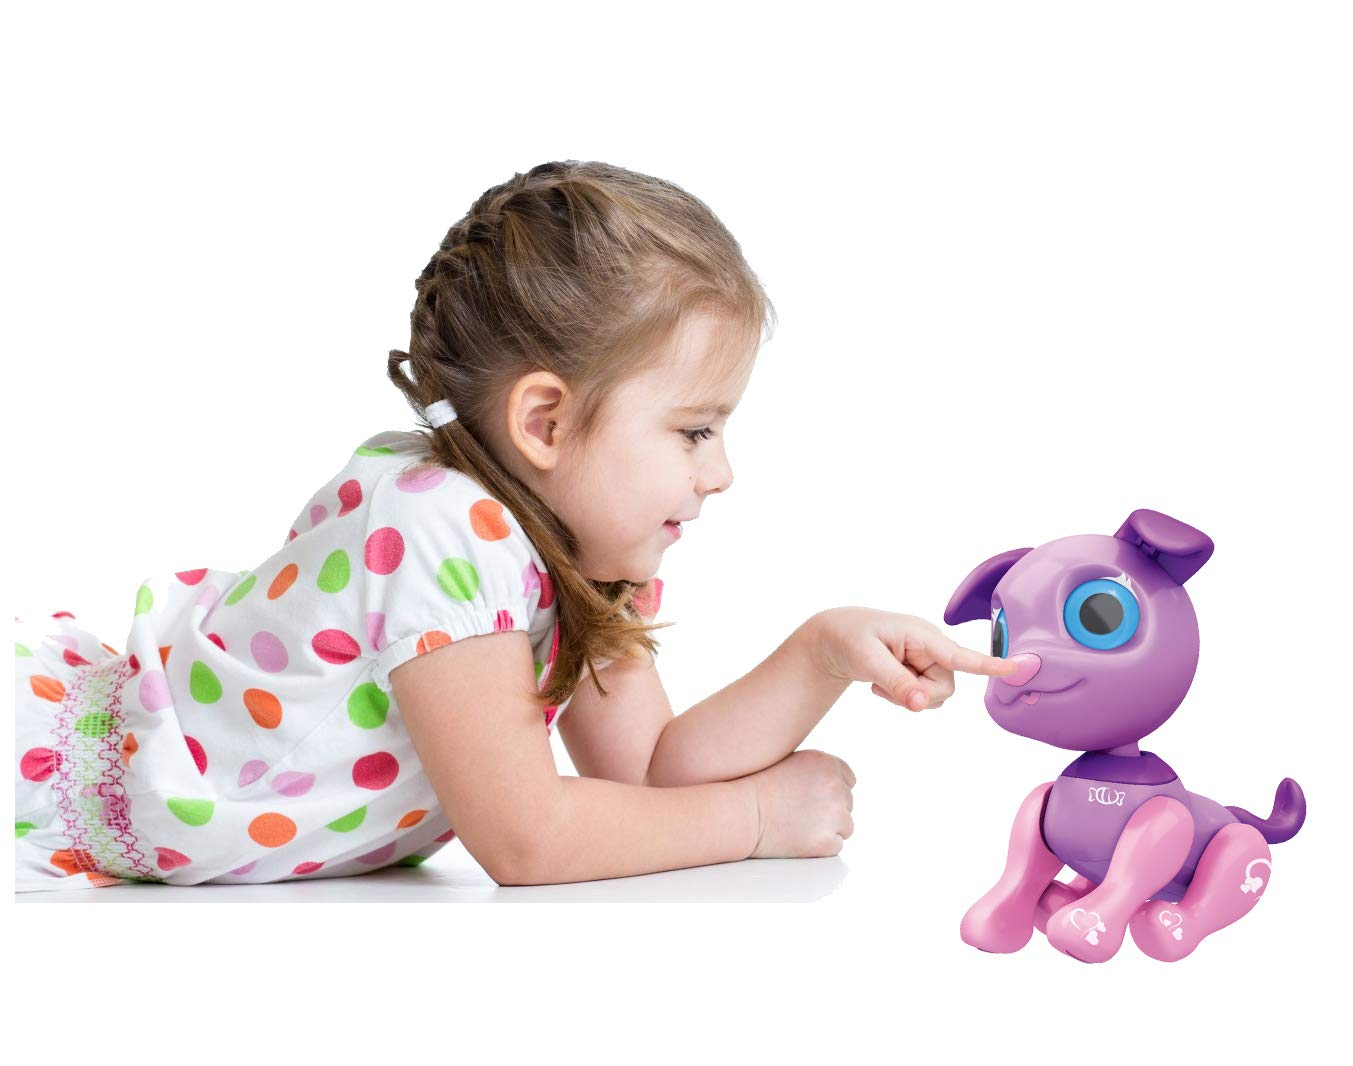 Liberty Imports My Best Friend Interactive Smart Puppy | Kids Electronic Pet Toy Robot Dog | Ideal Gift Idea for Girls (Purple) by Liberty Imports (Image #5)